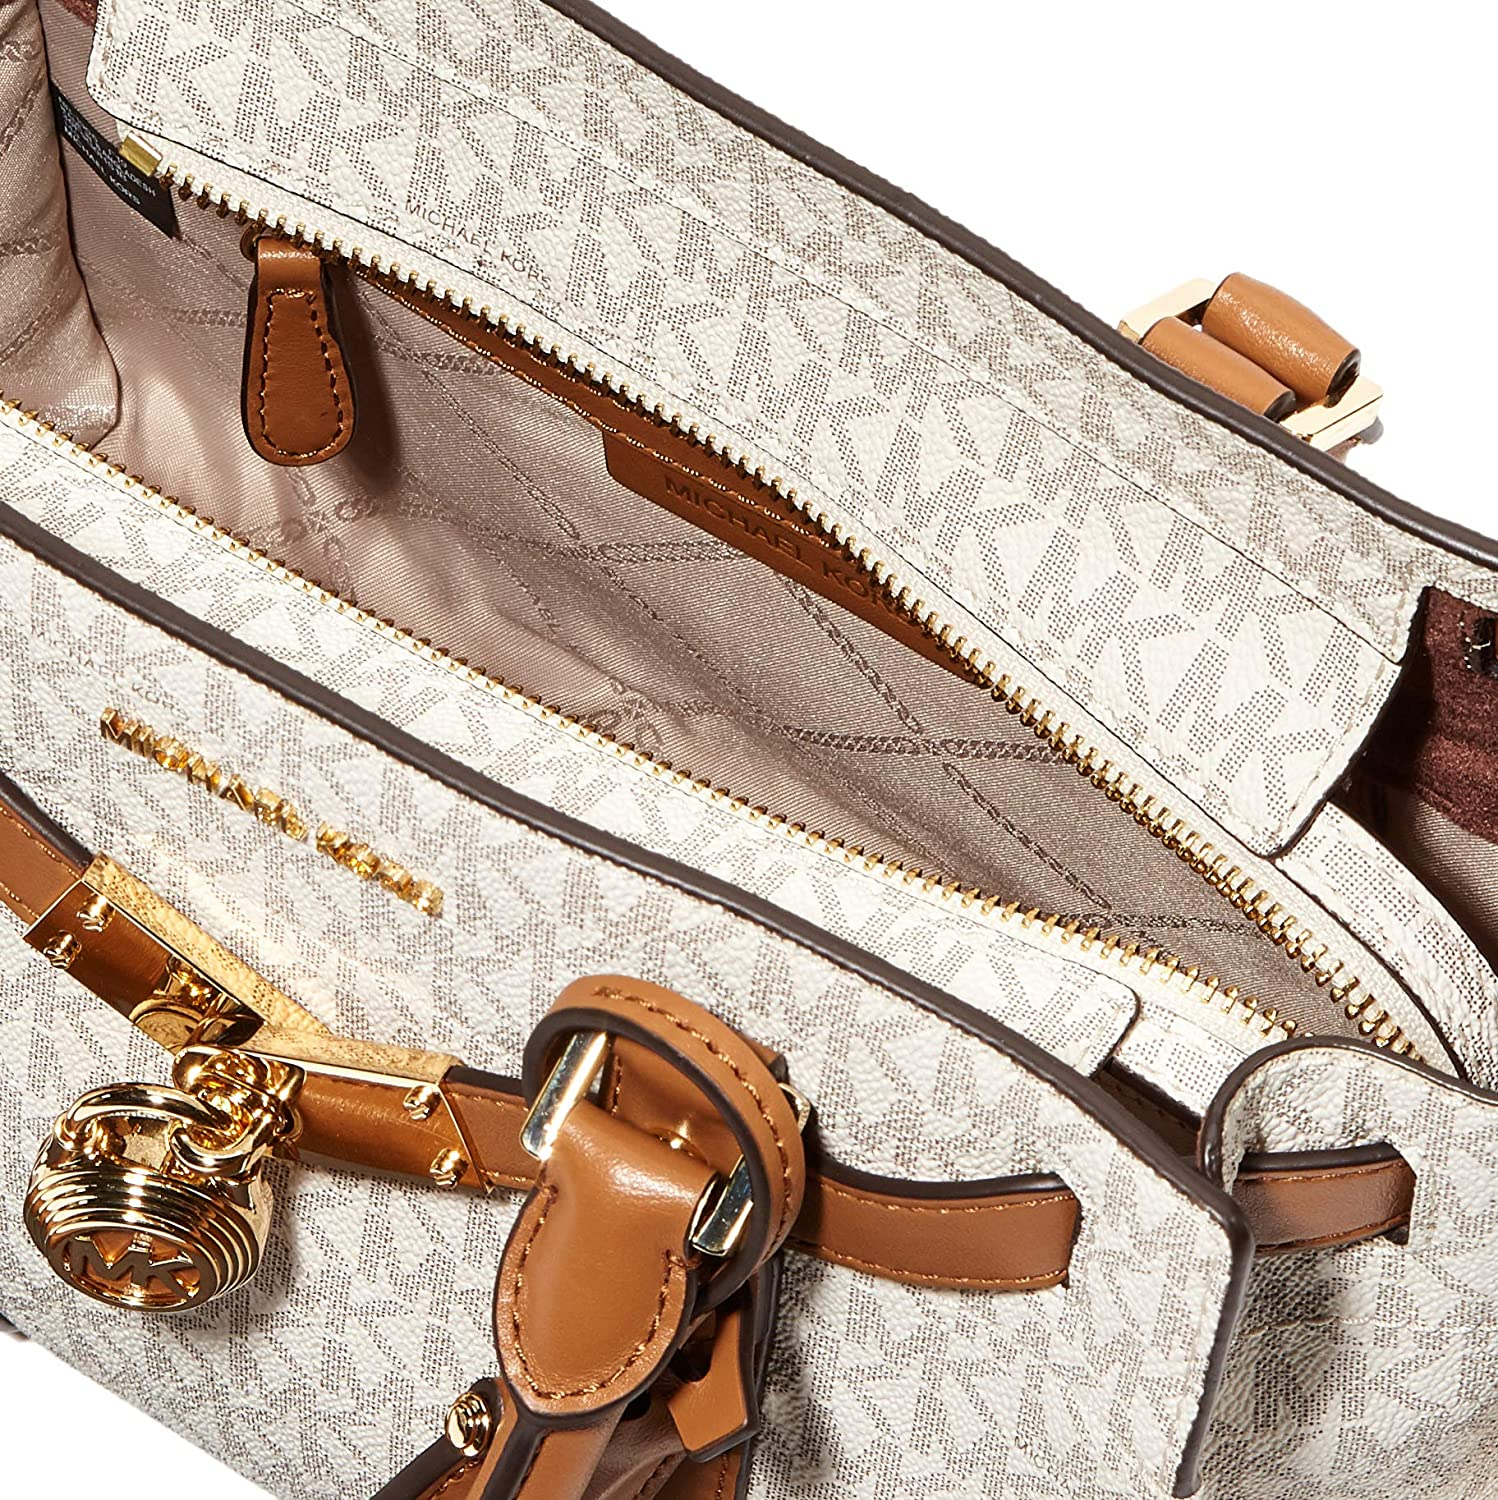 Michael Kors Hamilton Legacy, Cartable Multicolore (Vanilla/Acrylique).